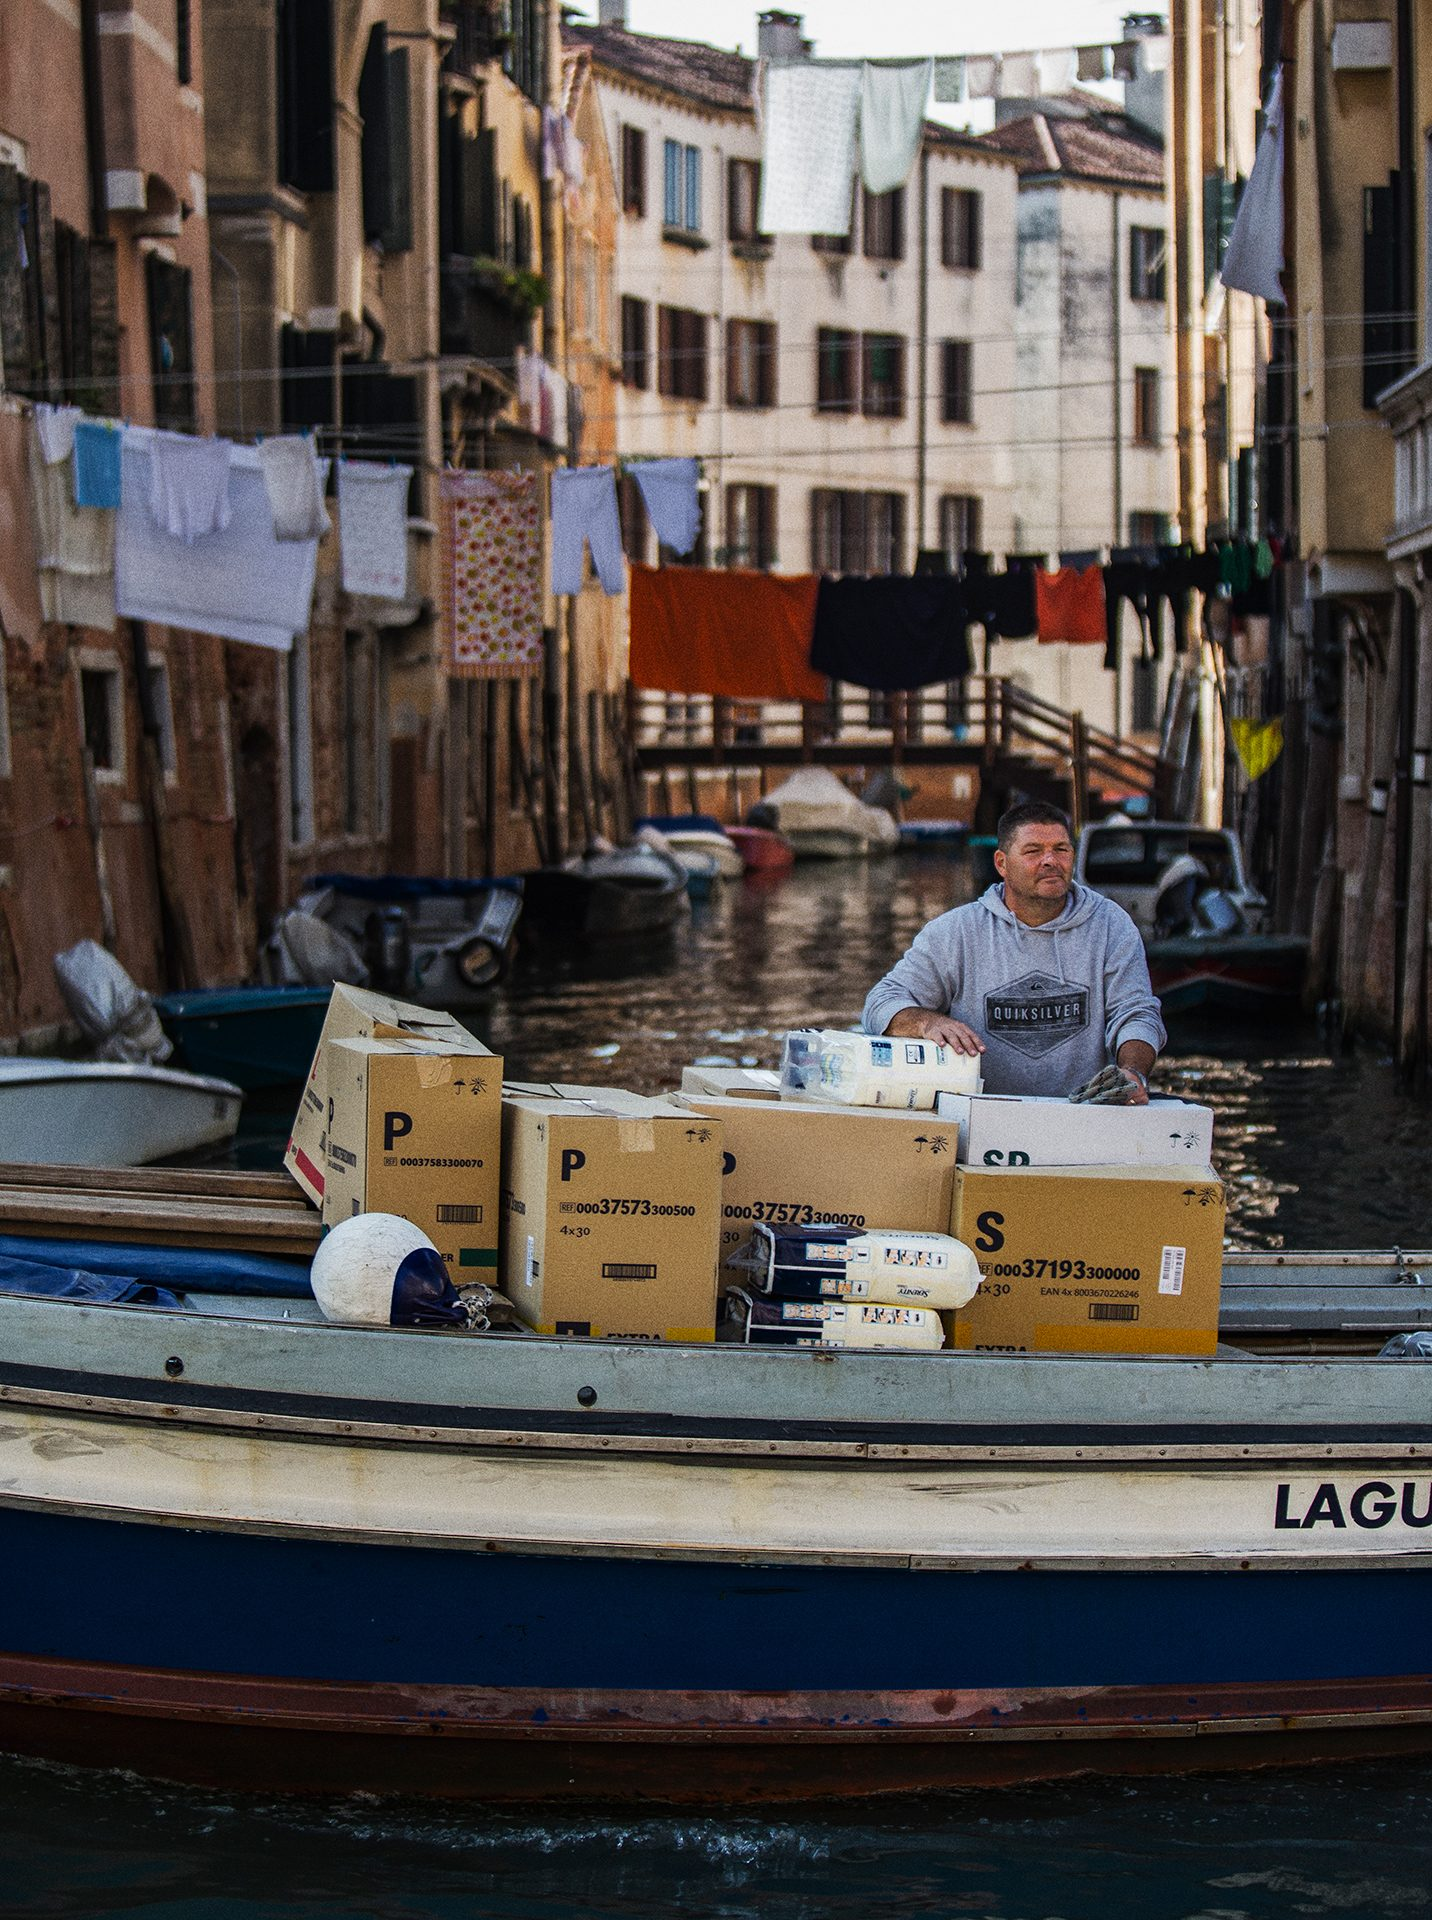 Venice, boat, channel, Italy, worker, working class hero, Italian